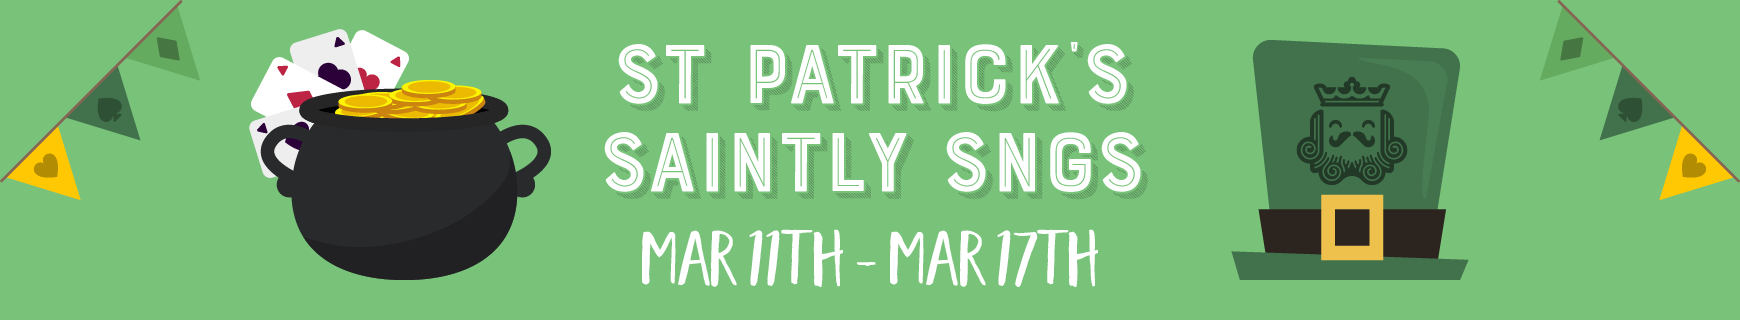 St patrick's saintly sngs %28870 x 160%29 2x